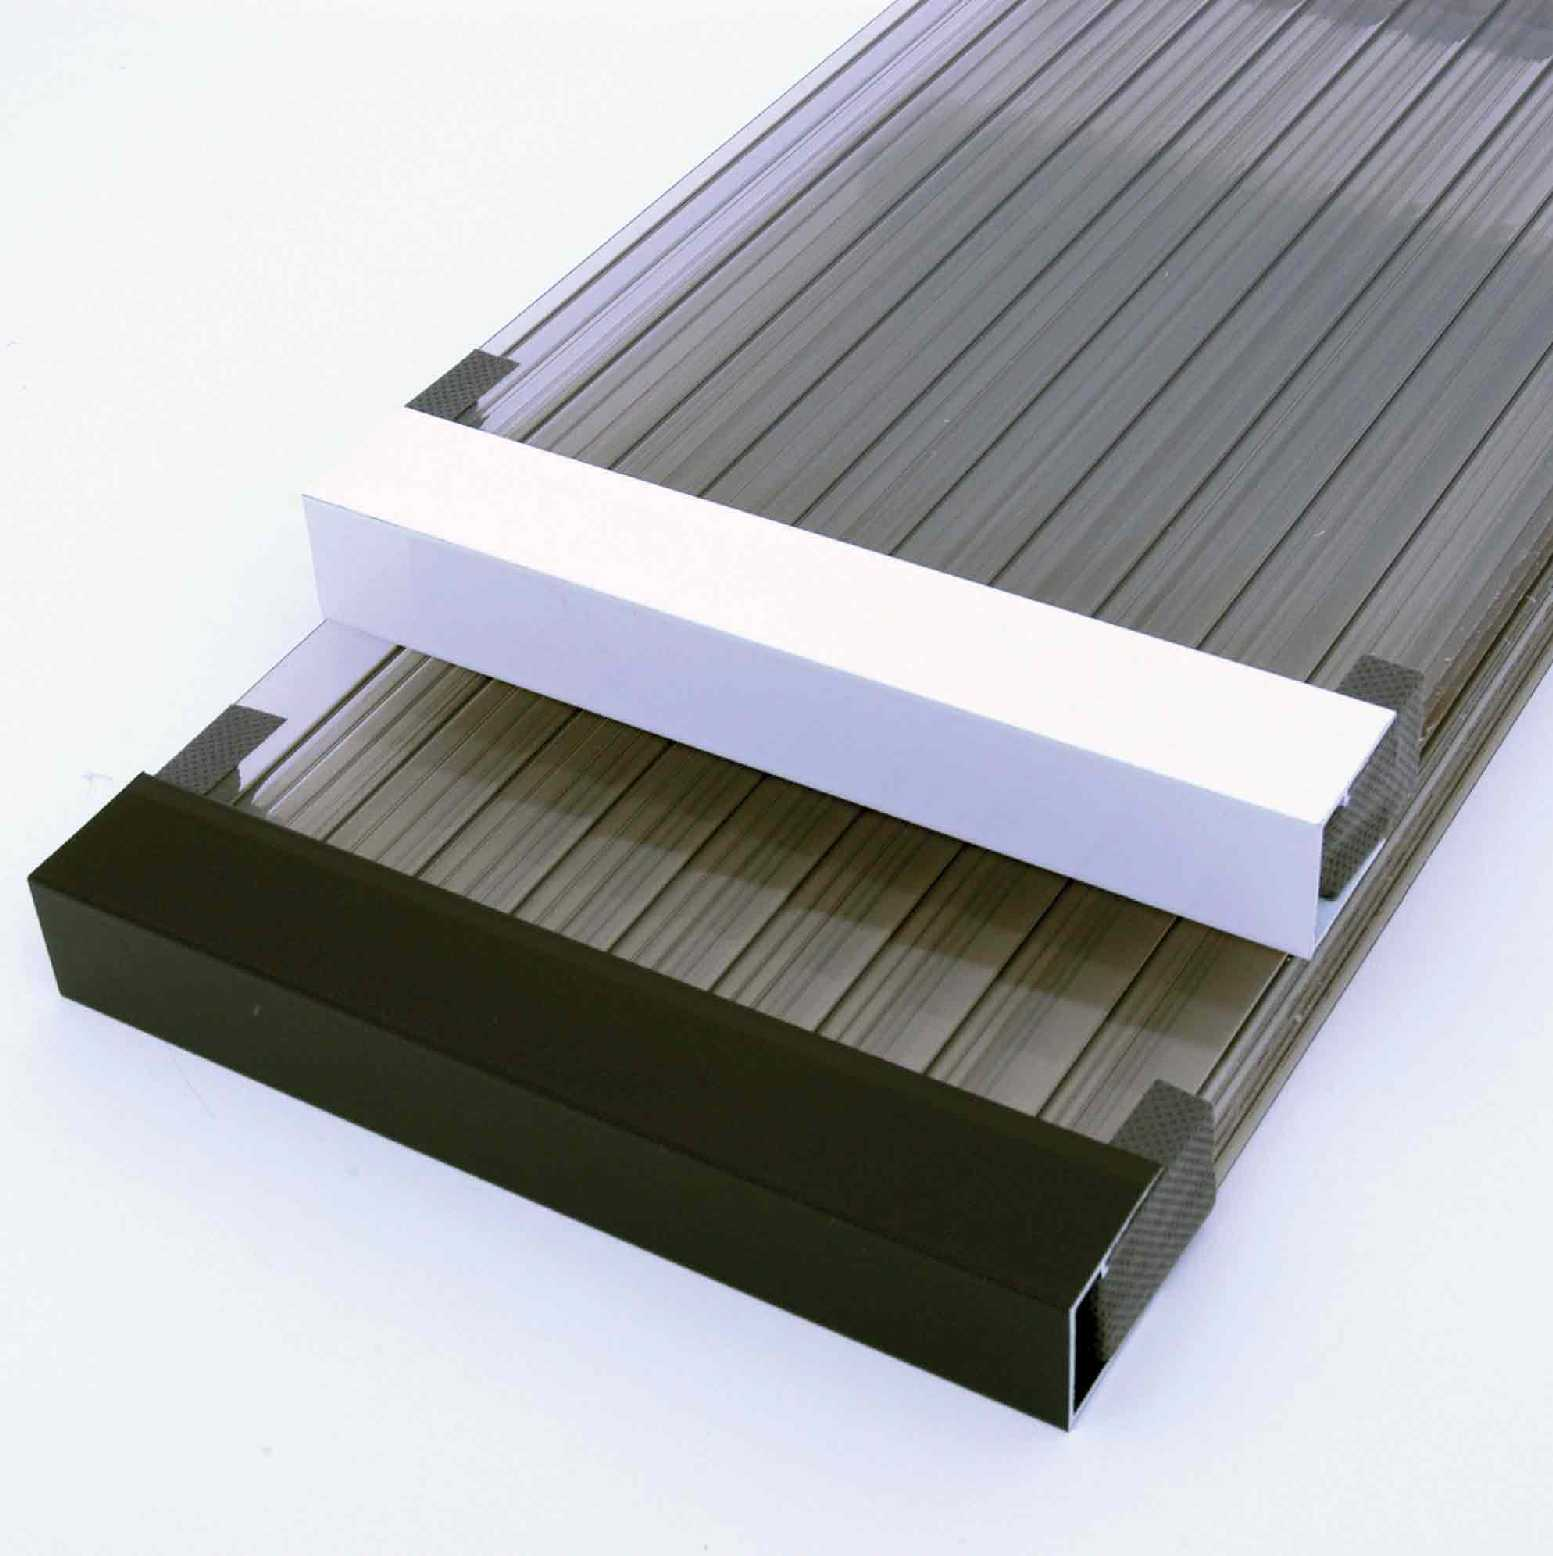 uPVC Sheet Closures for 35mm thick glazing, 2.1m